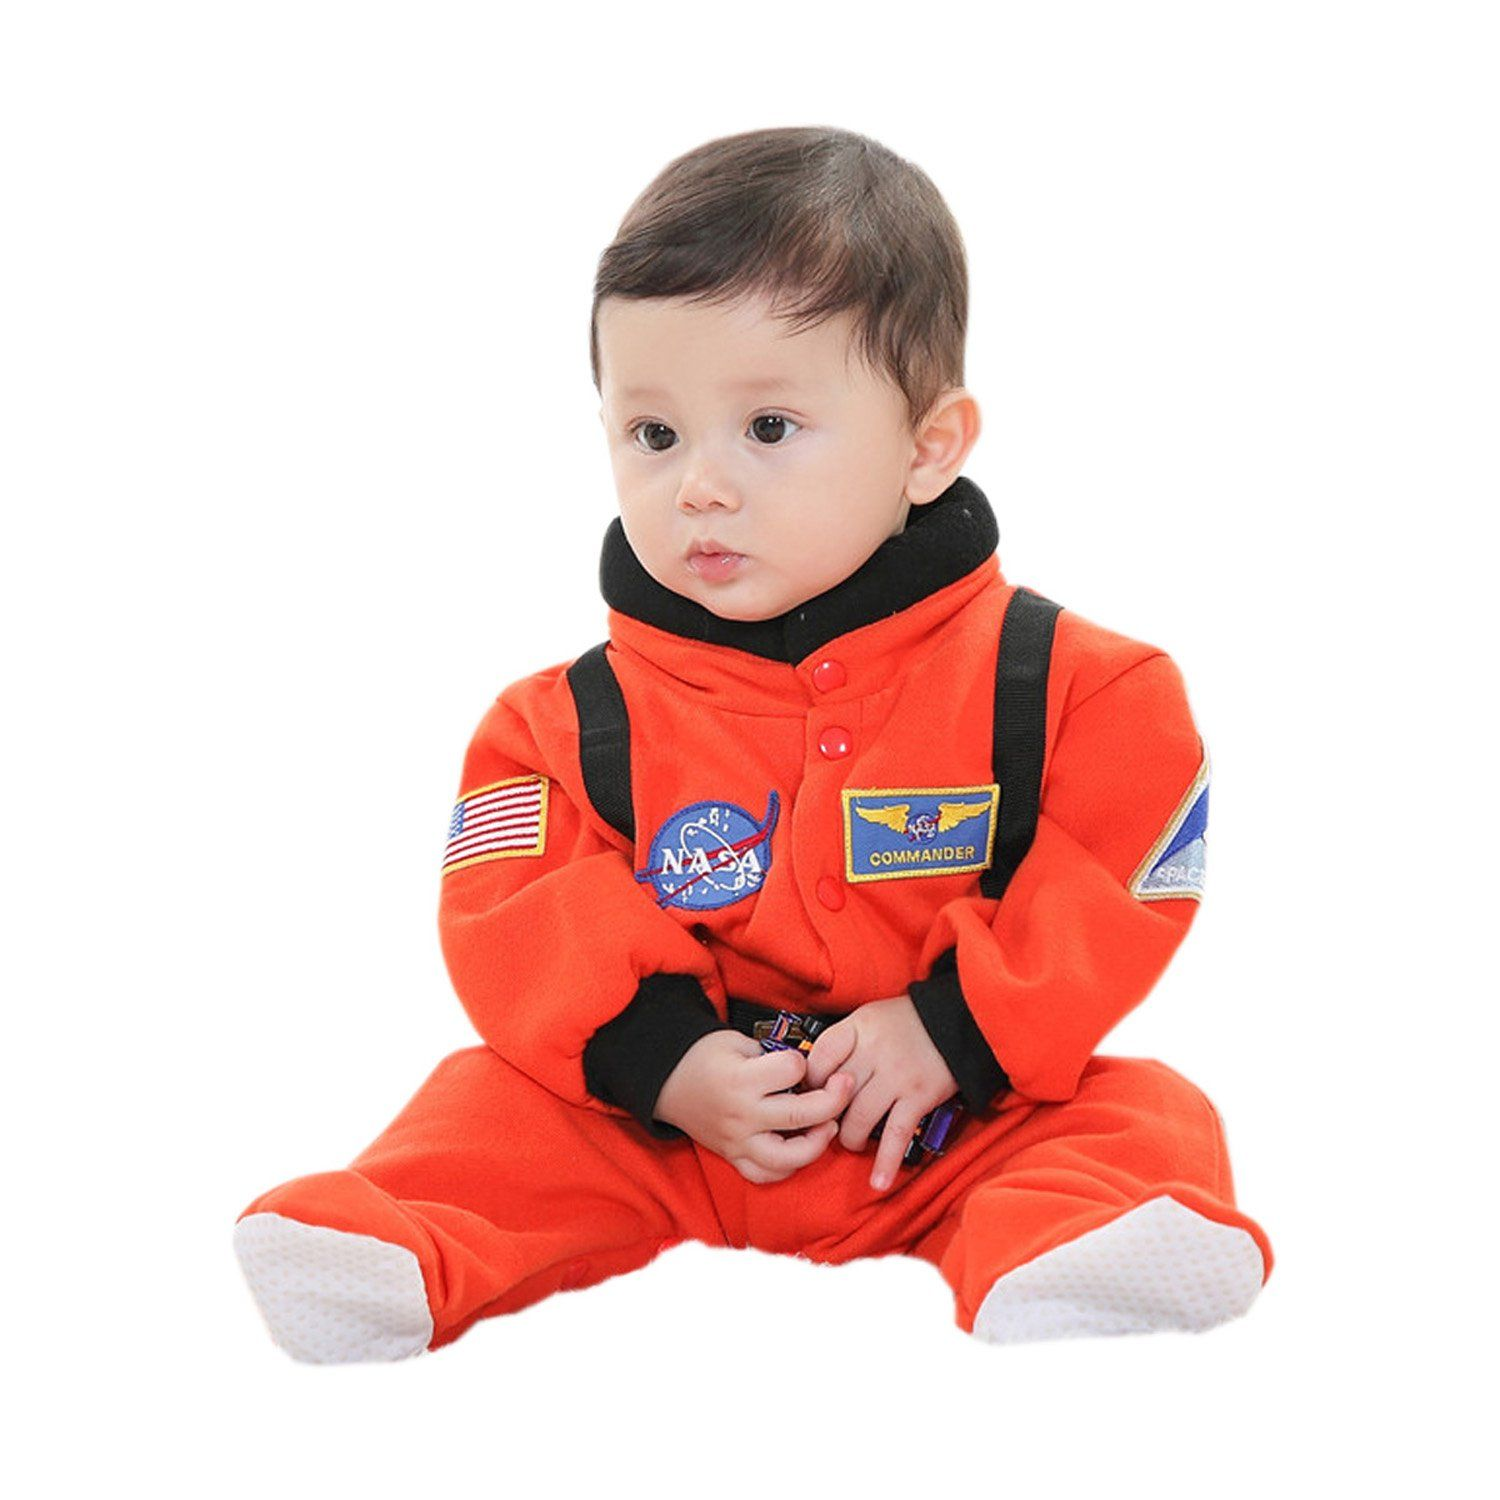 NASA Astronaut Tot Space Suit Baby Infant Costume